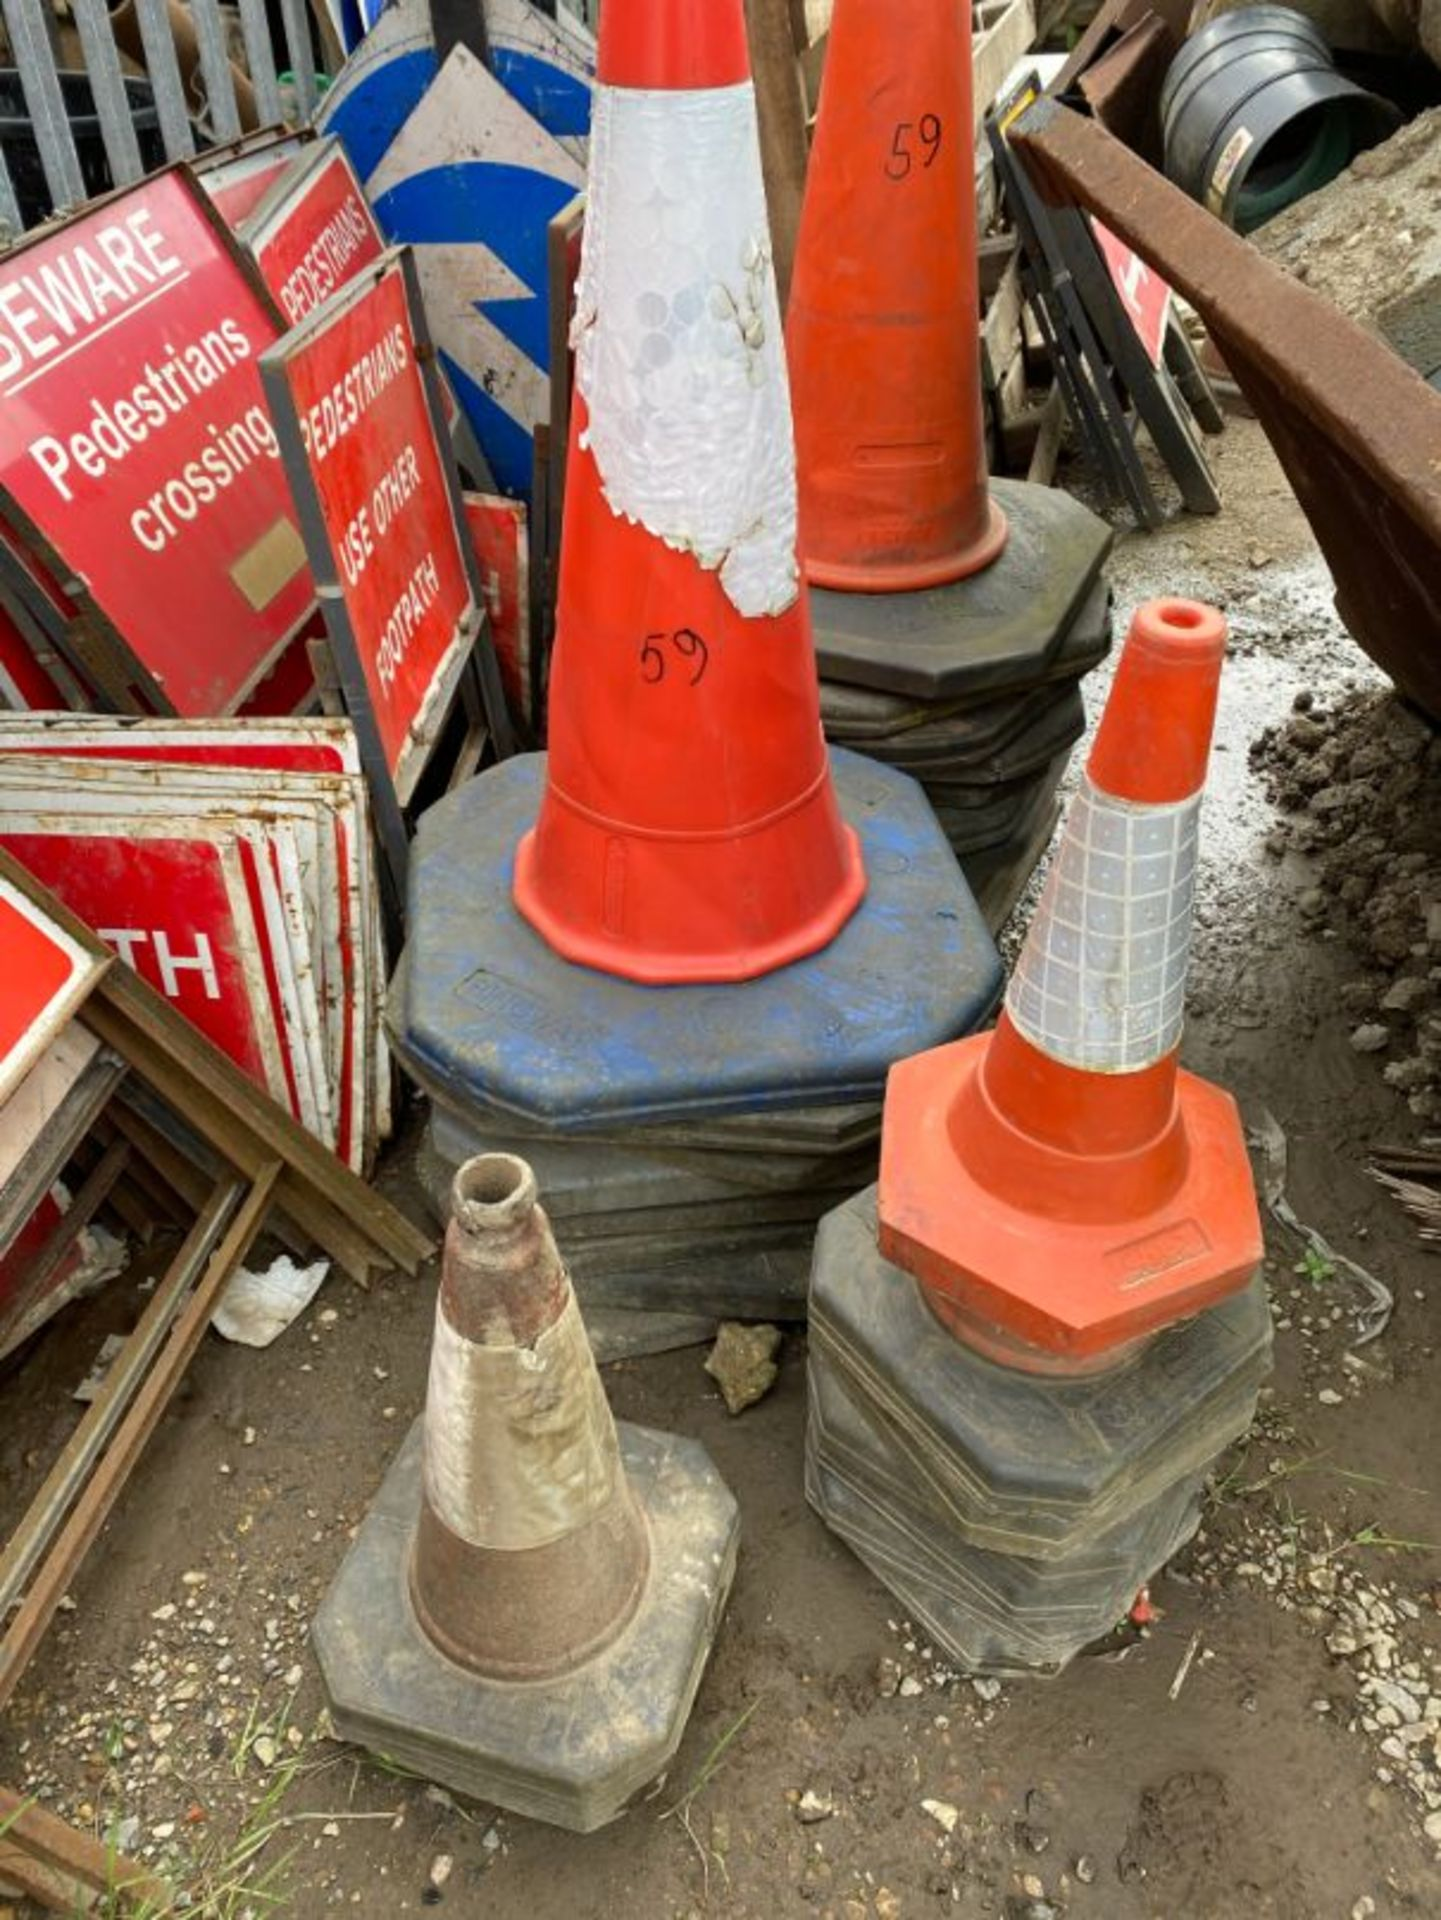 Lot 59 - Qty various road signs and bollards, as lotted